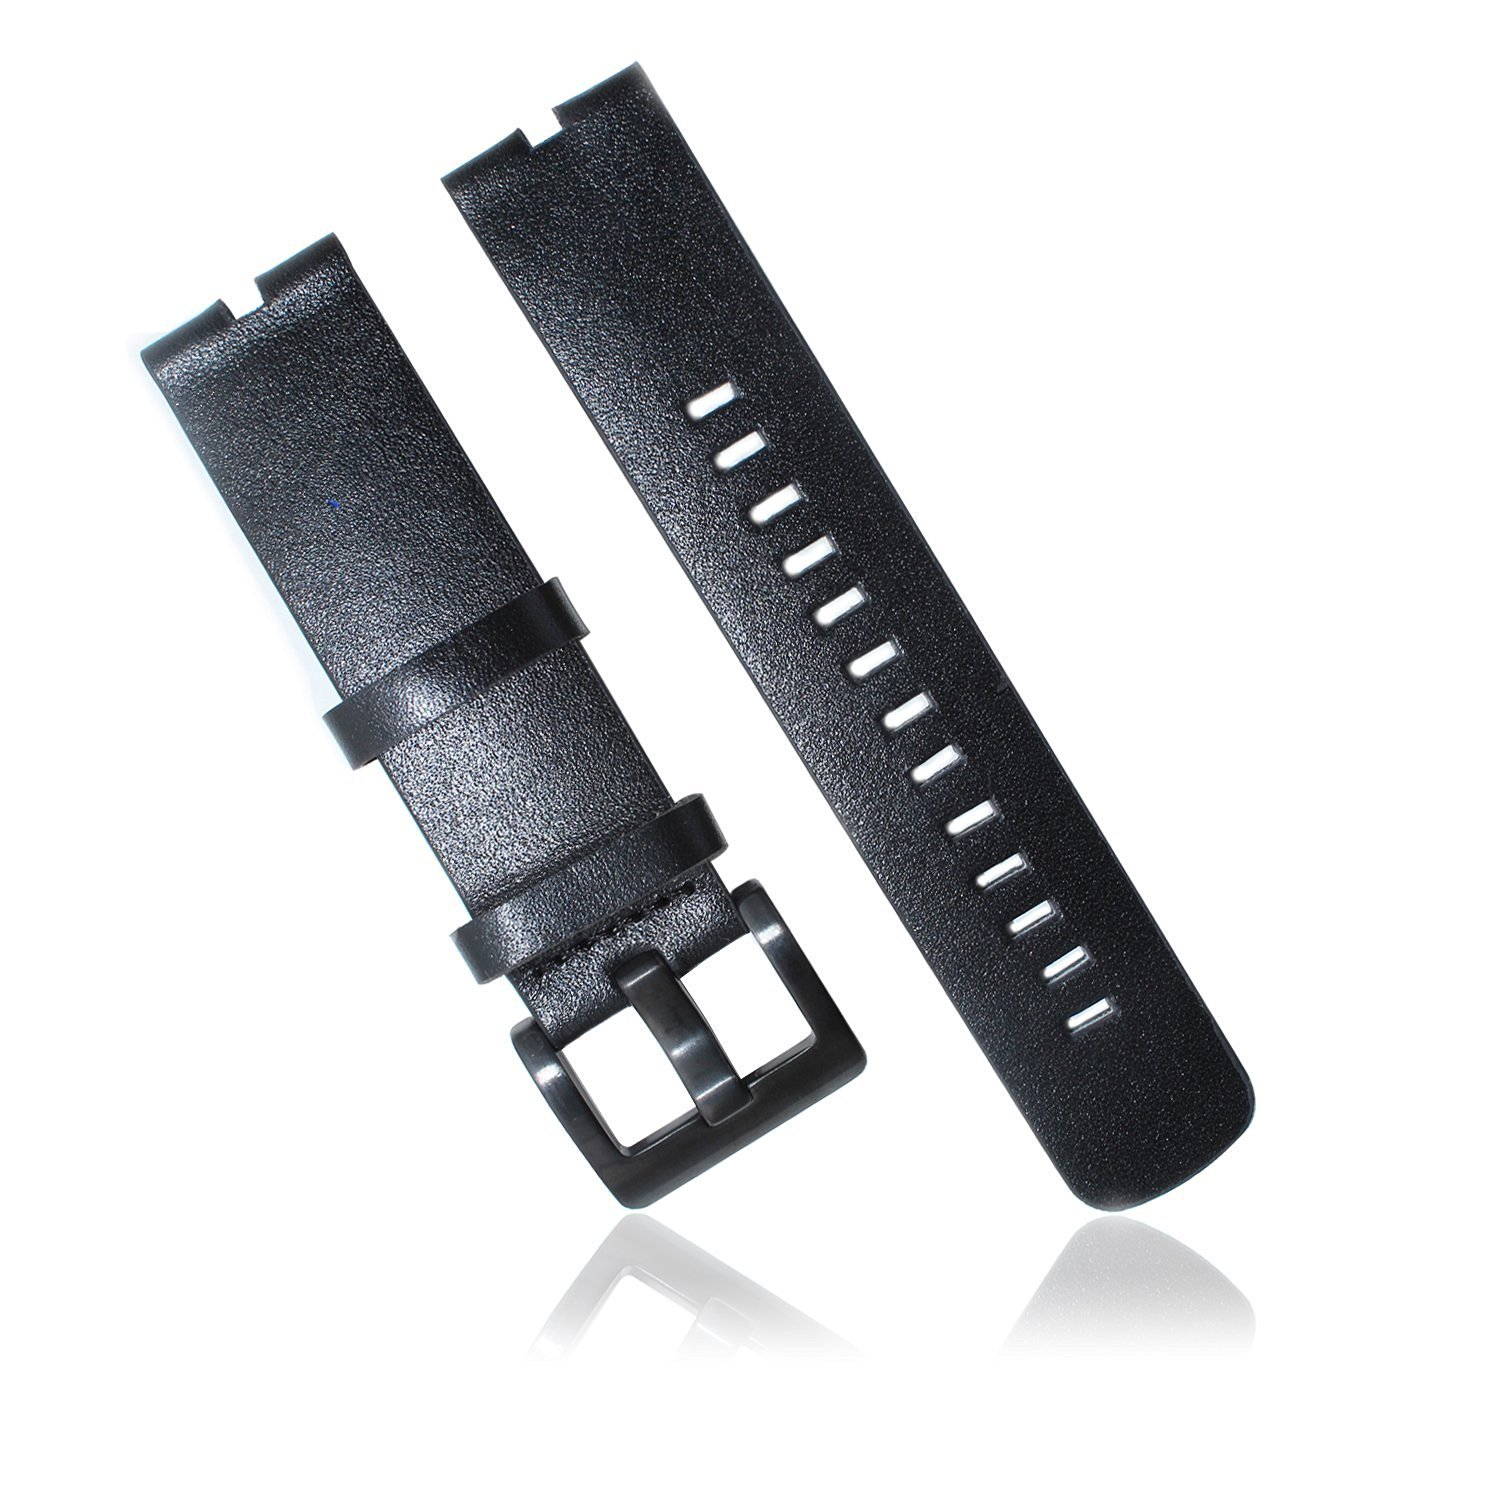 Bradychan High Quality Fashion Leather Watch Band Watchband Strap Specially Designed for Motorola Moto 360 Smartwatch Moto360 Watchband Strap